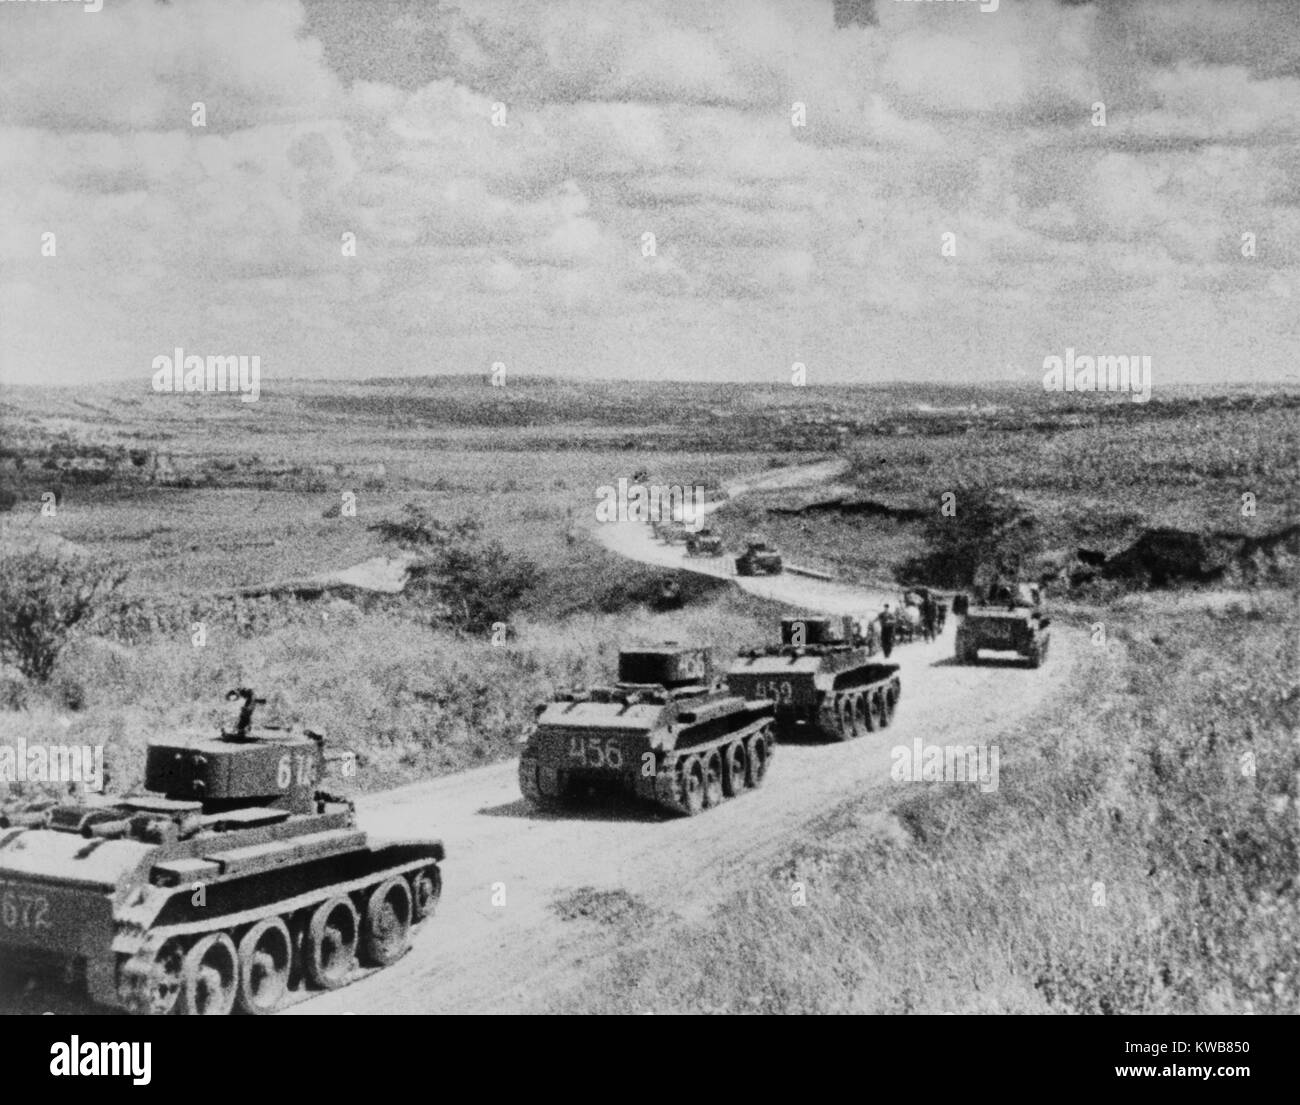 Convoy of Soviet (Russian) tanks in Romania during the annexation of Bessarabia, Romania, in 1940. Bessarabia, was - Stock Image